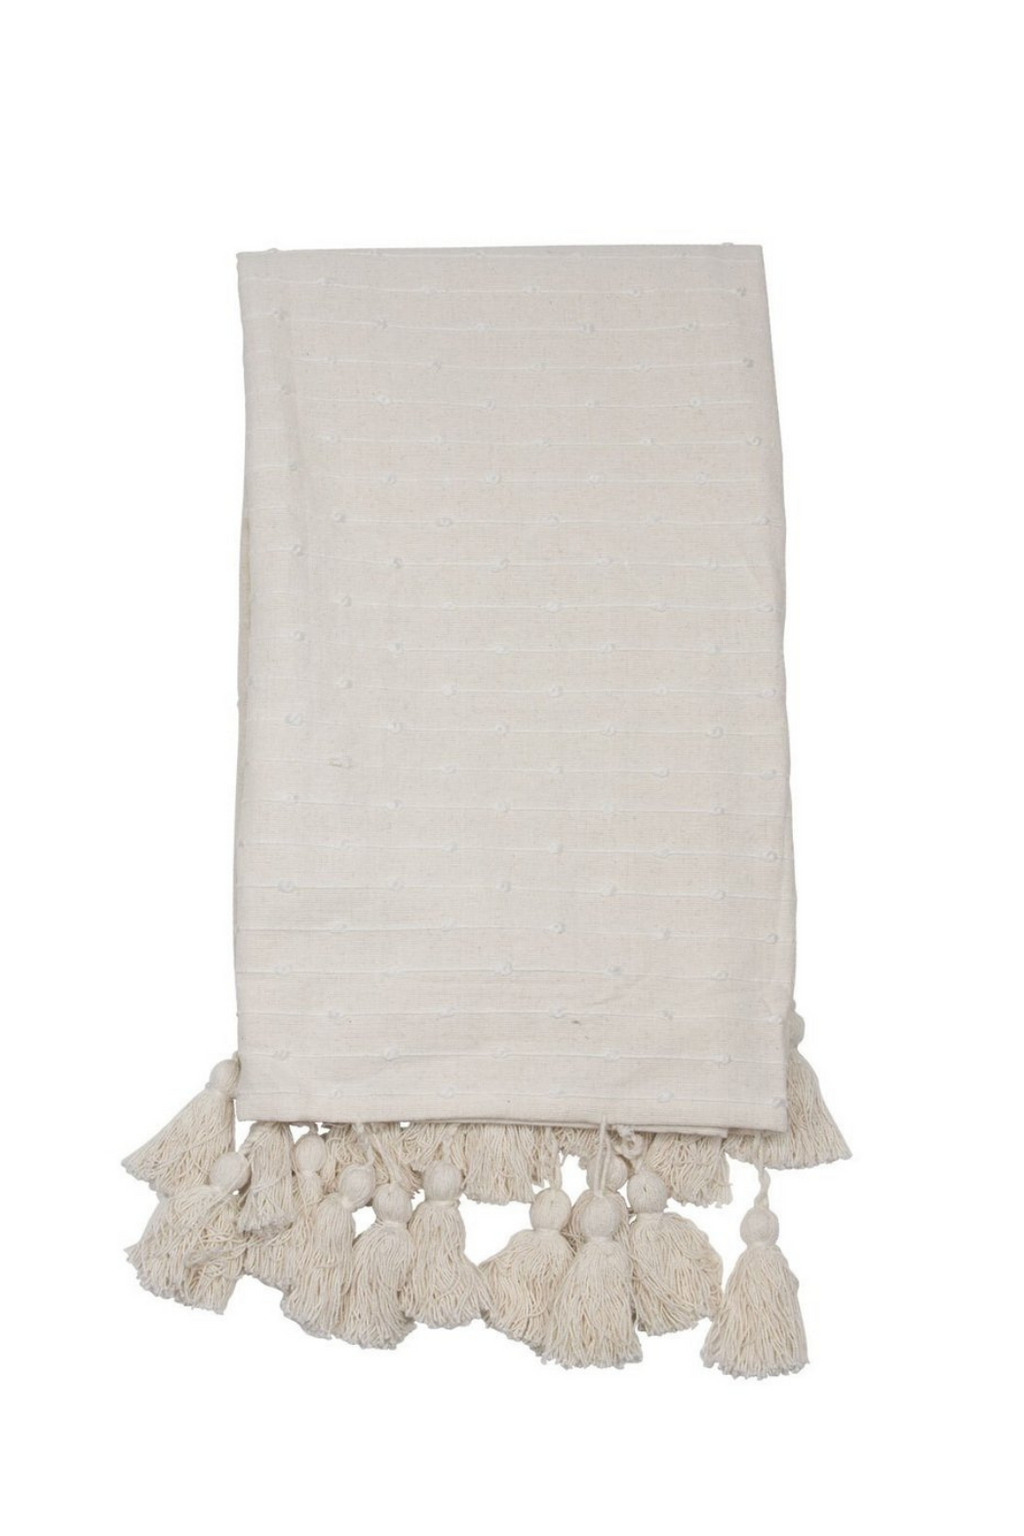 Foreside Home & Garden Hand Woven Kira Throw in White